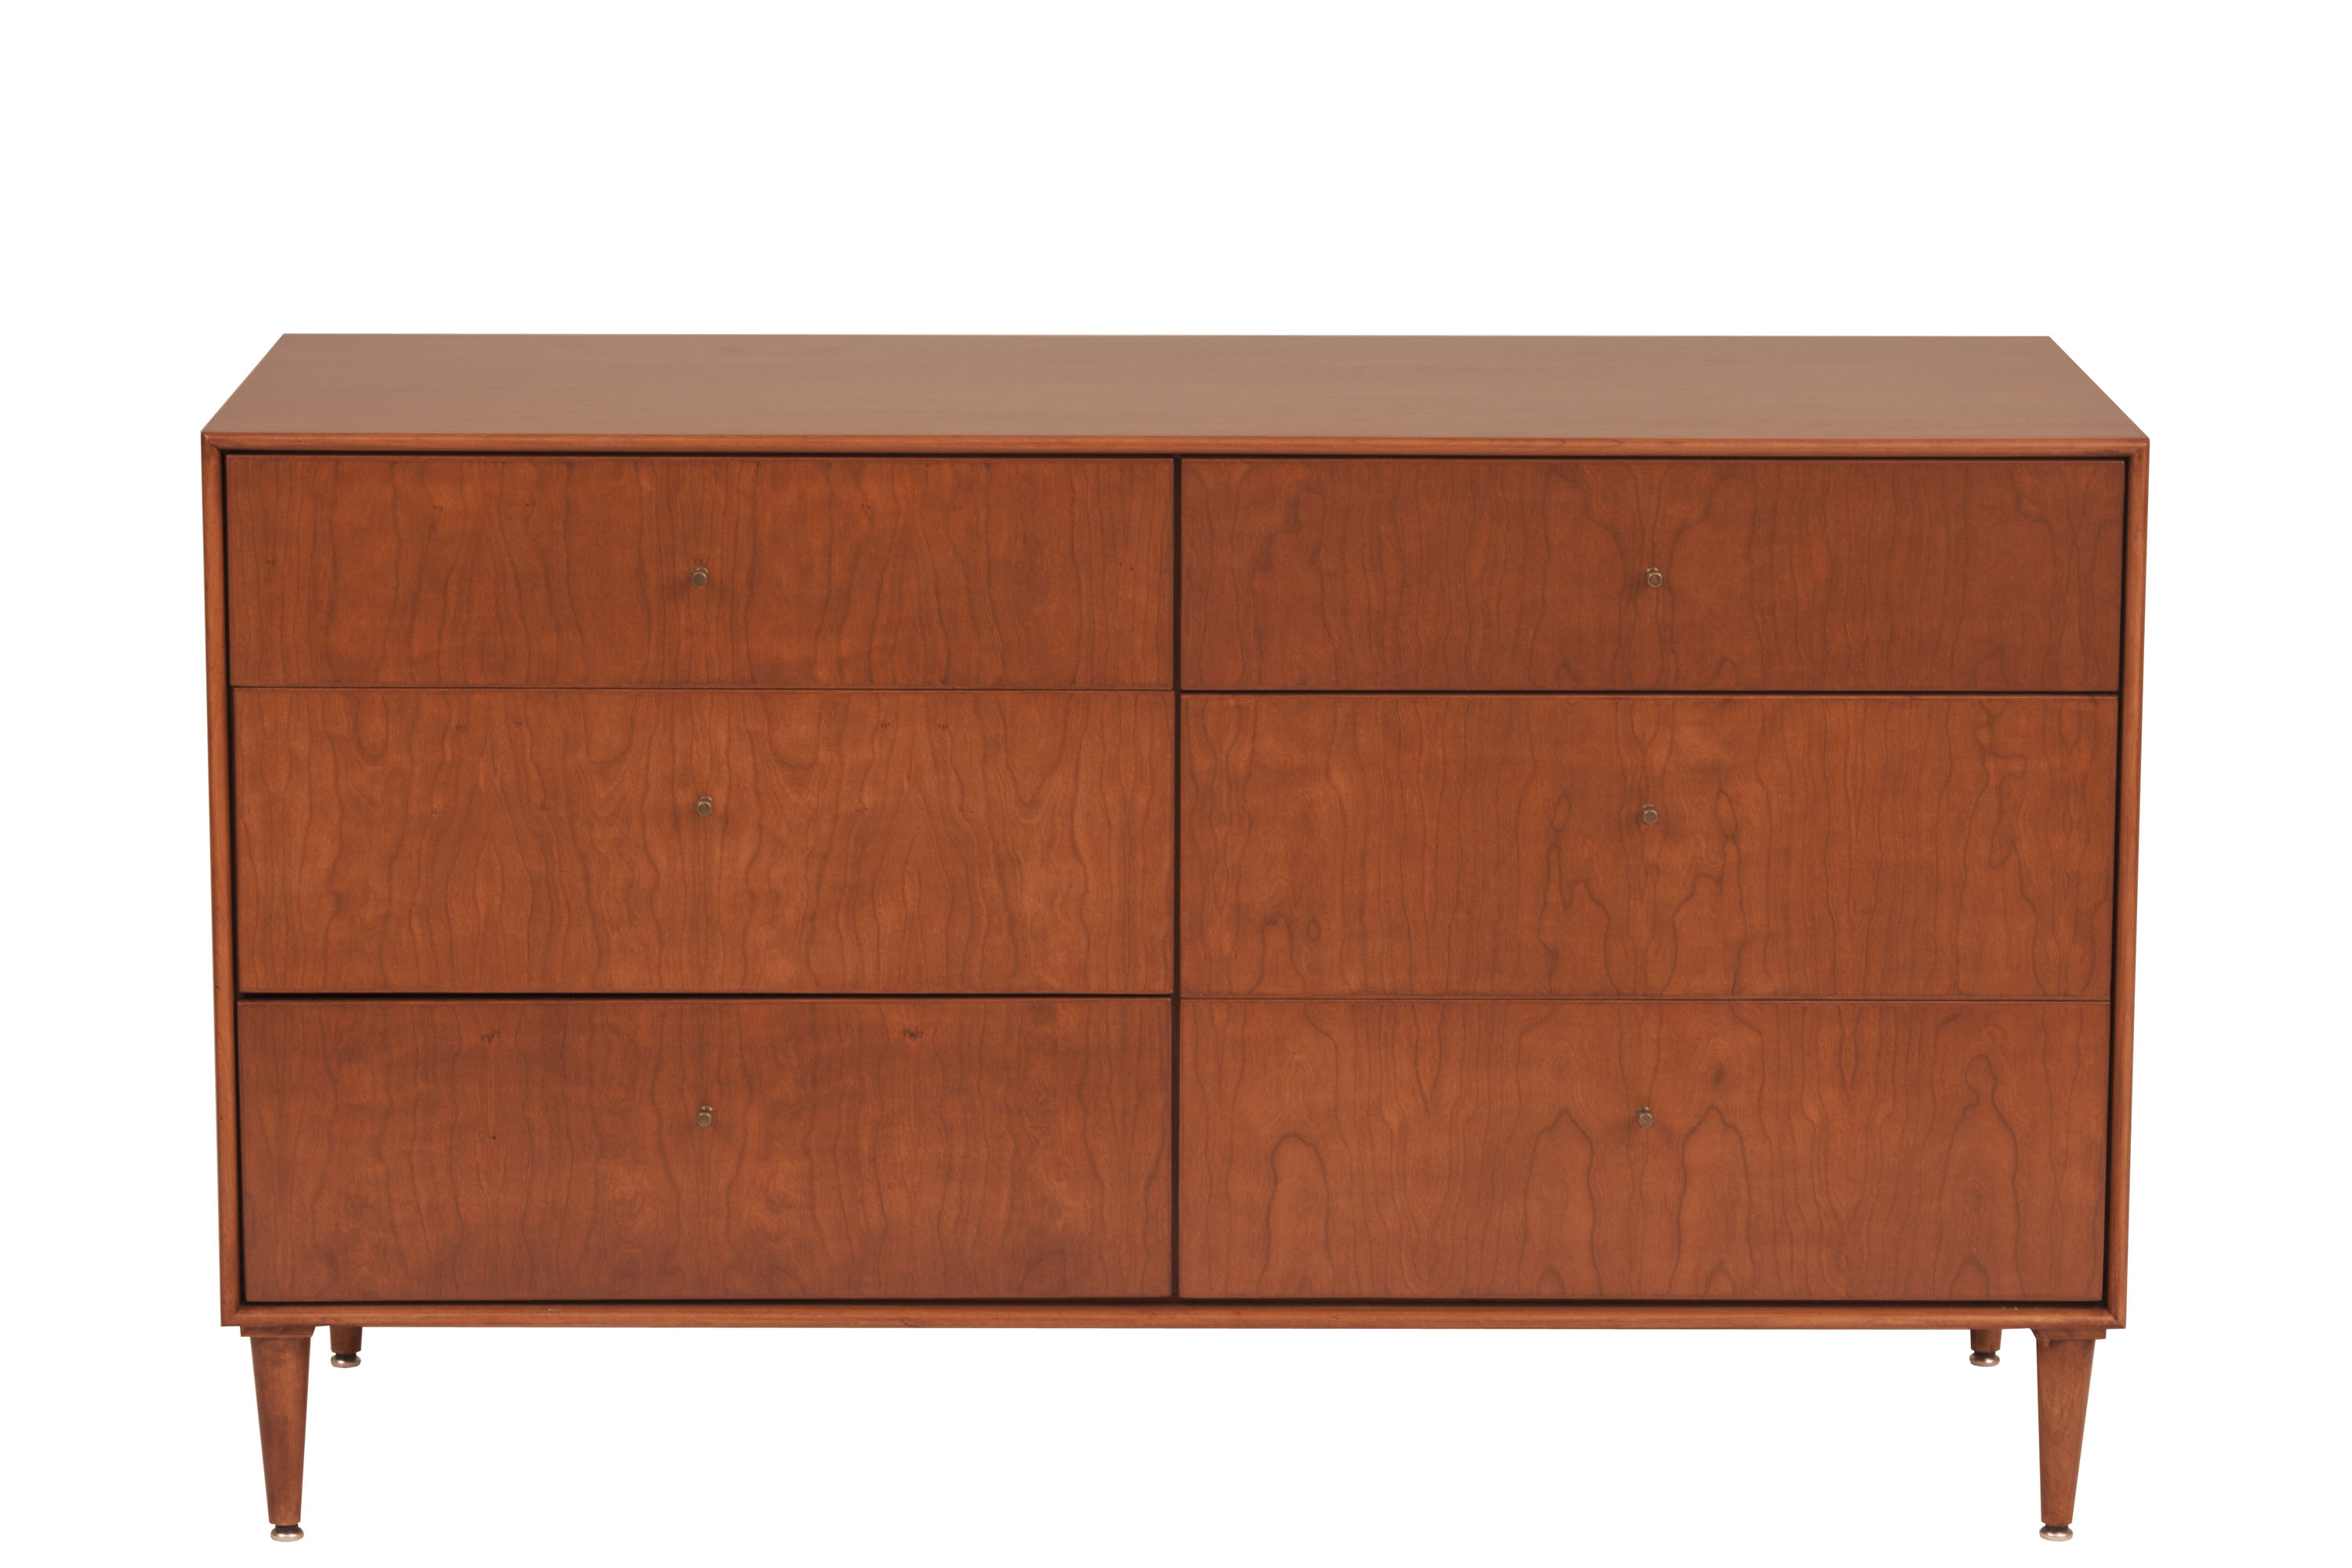 cool modern Mid century Dresser in brown without leg